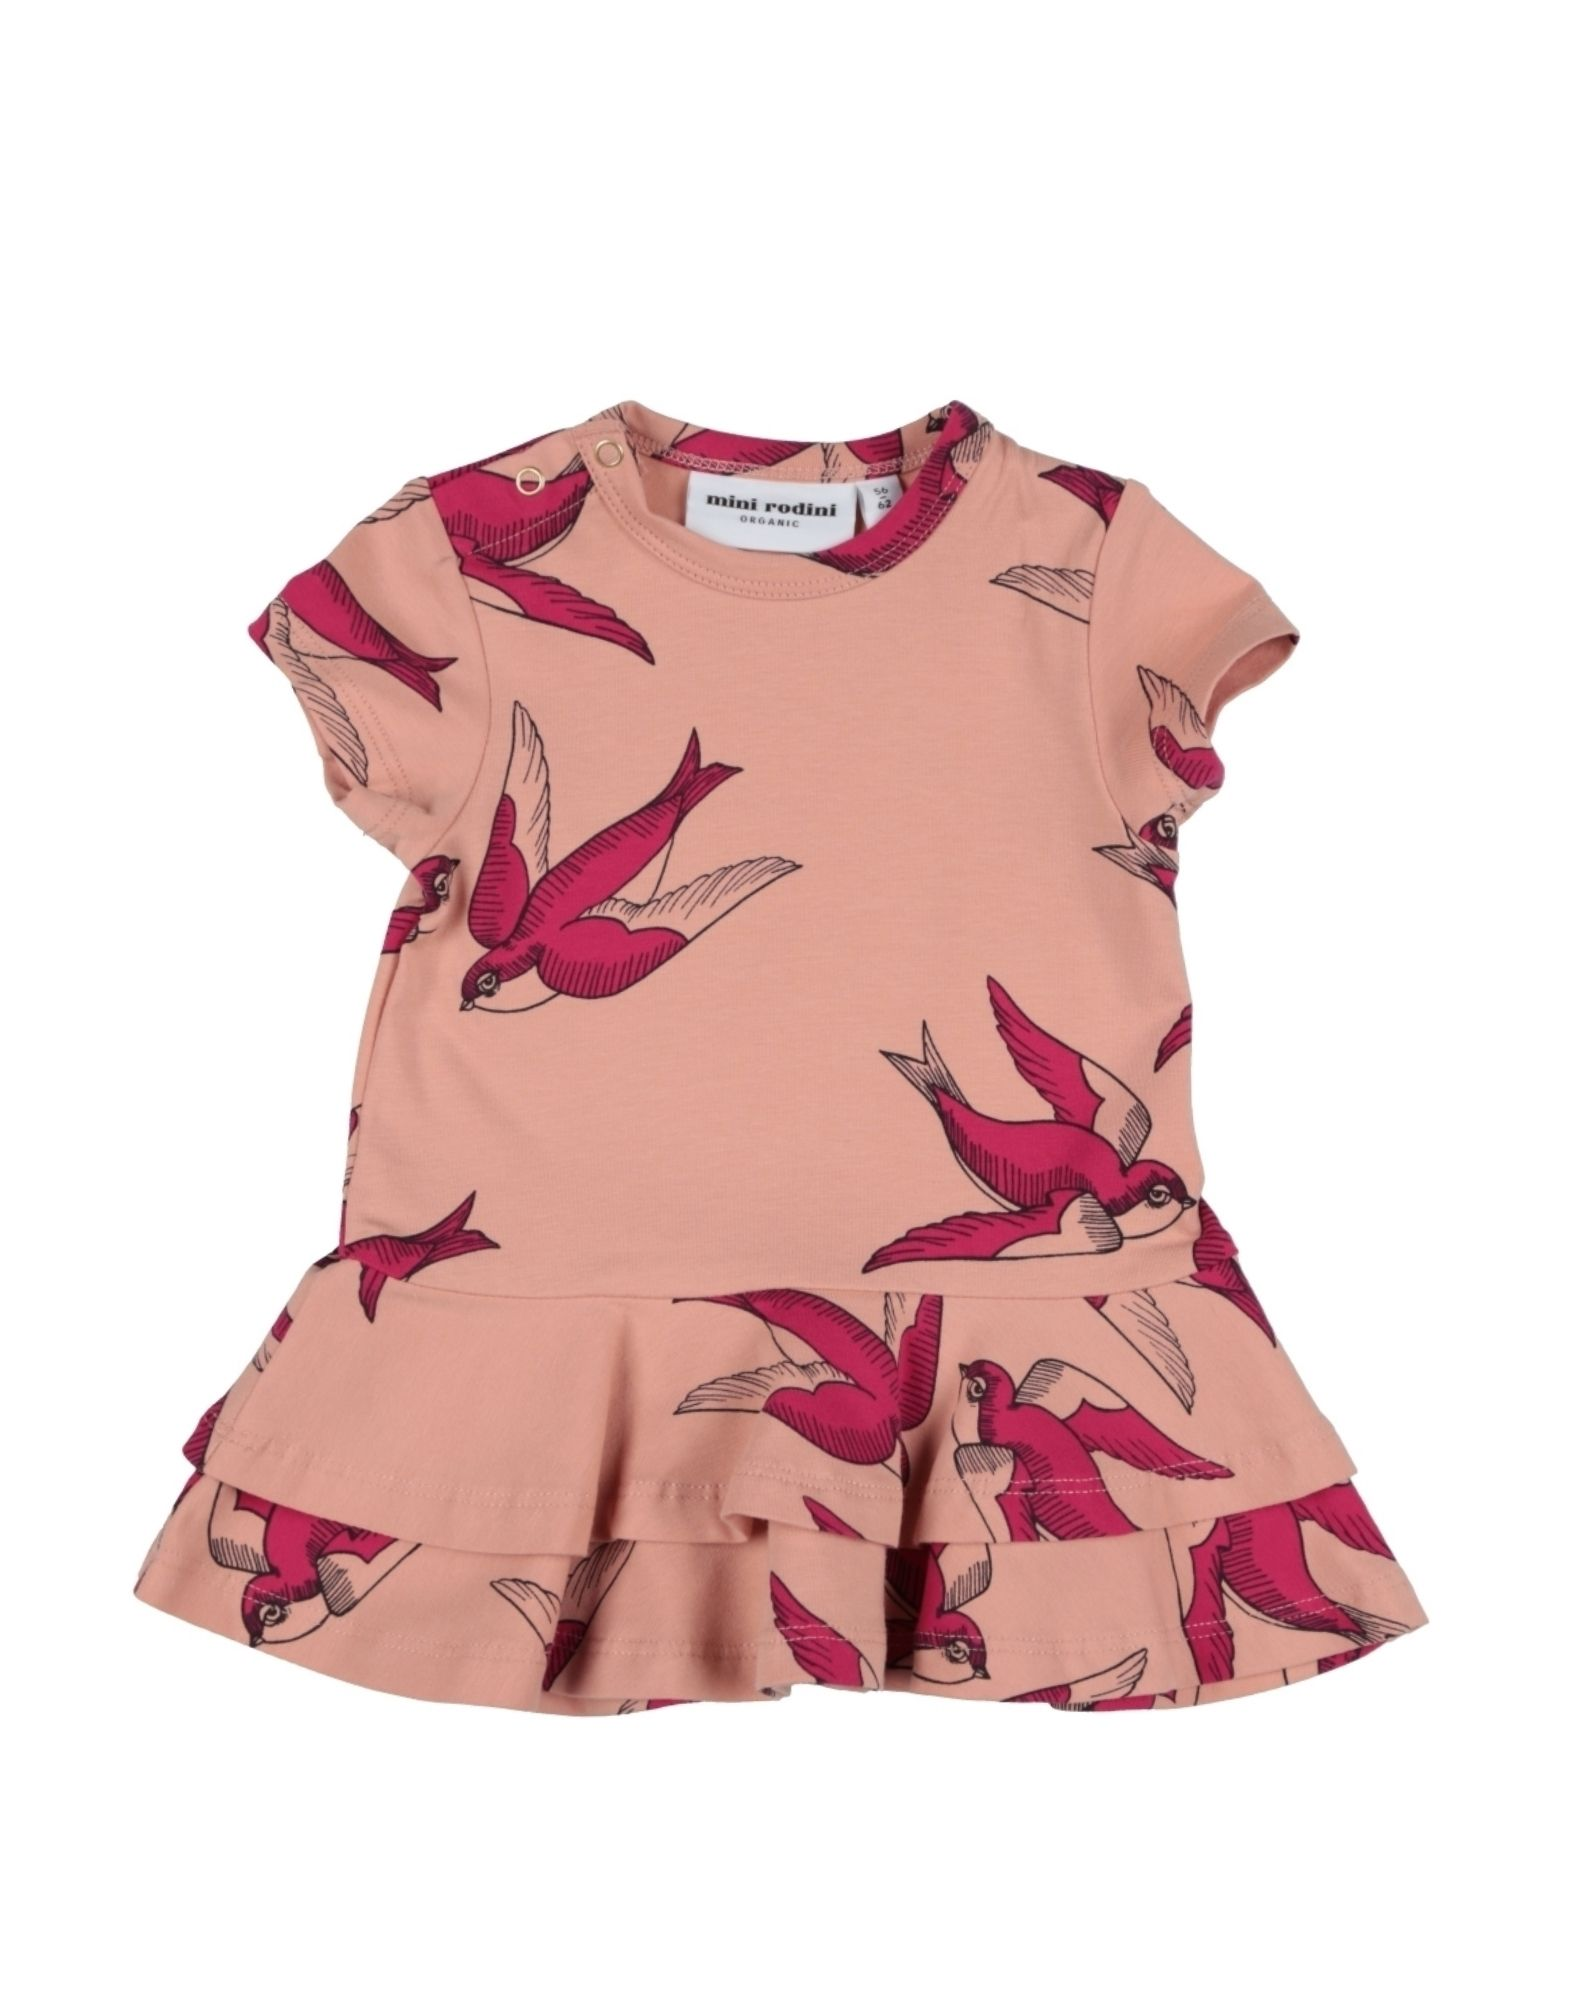 Dress for baby girl & toddler 0-24 months, designer kids fashion | YOOX